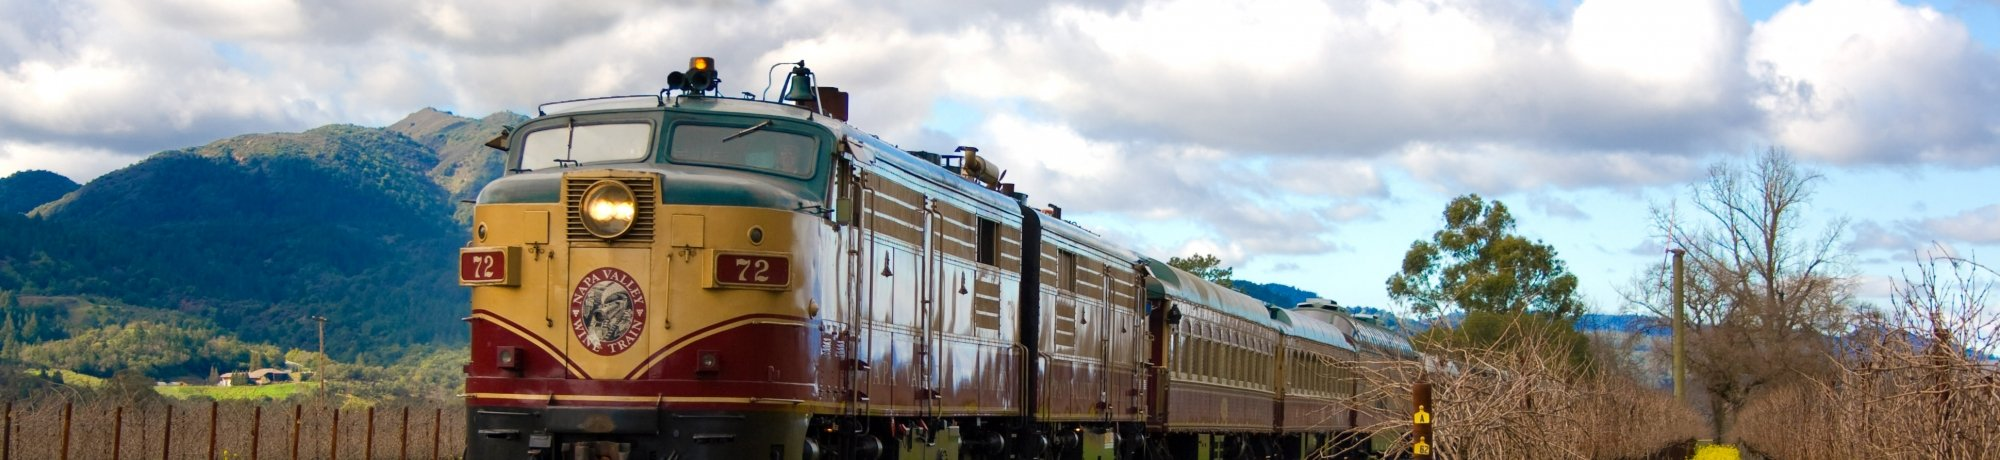 The Napa Valley Wine Train runs alongside a California vineyard.